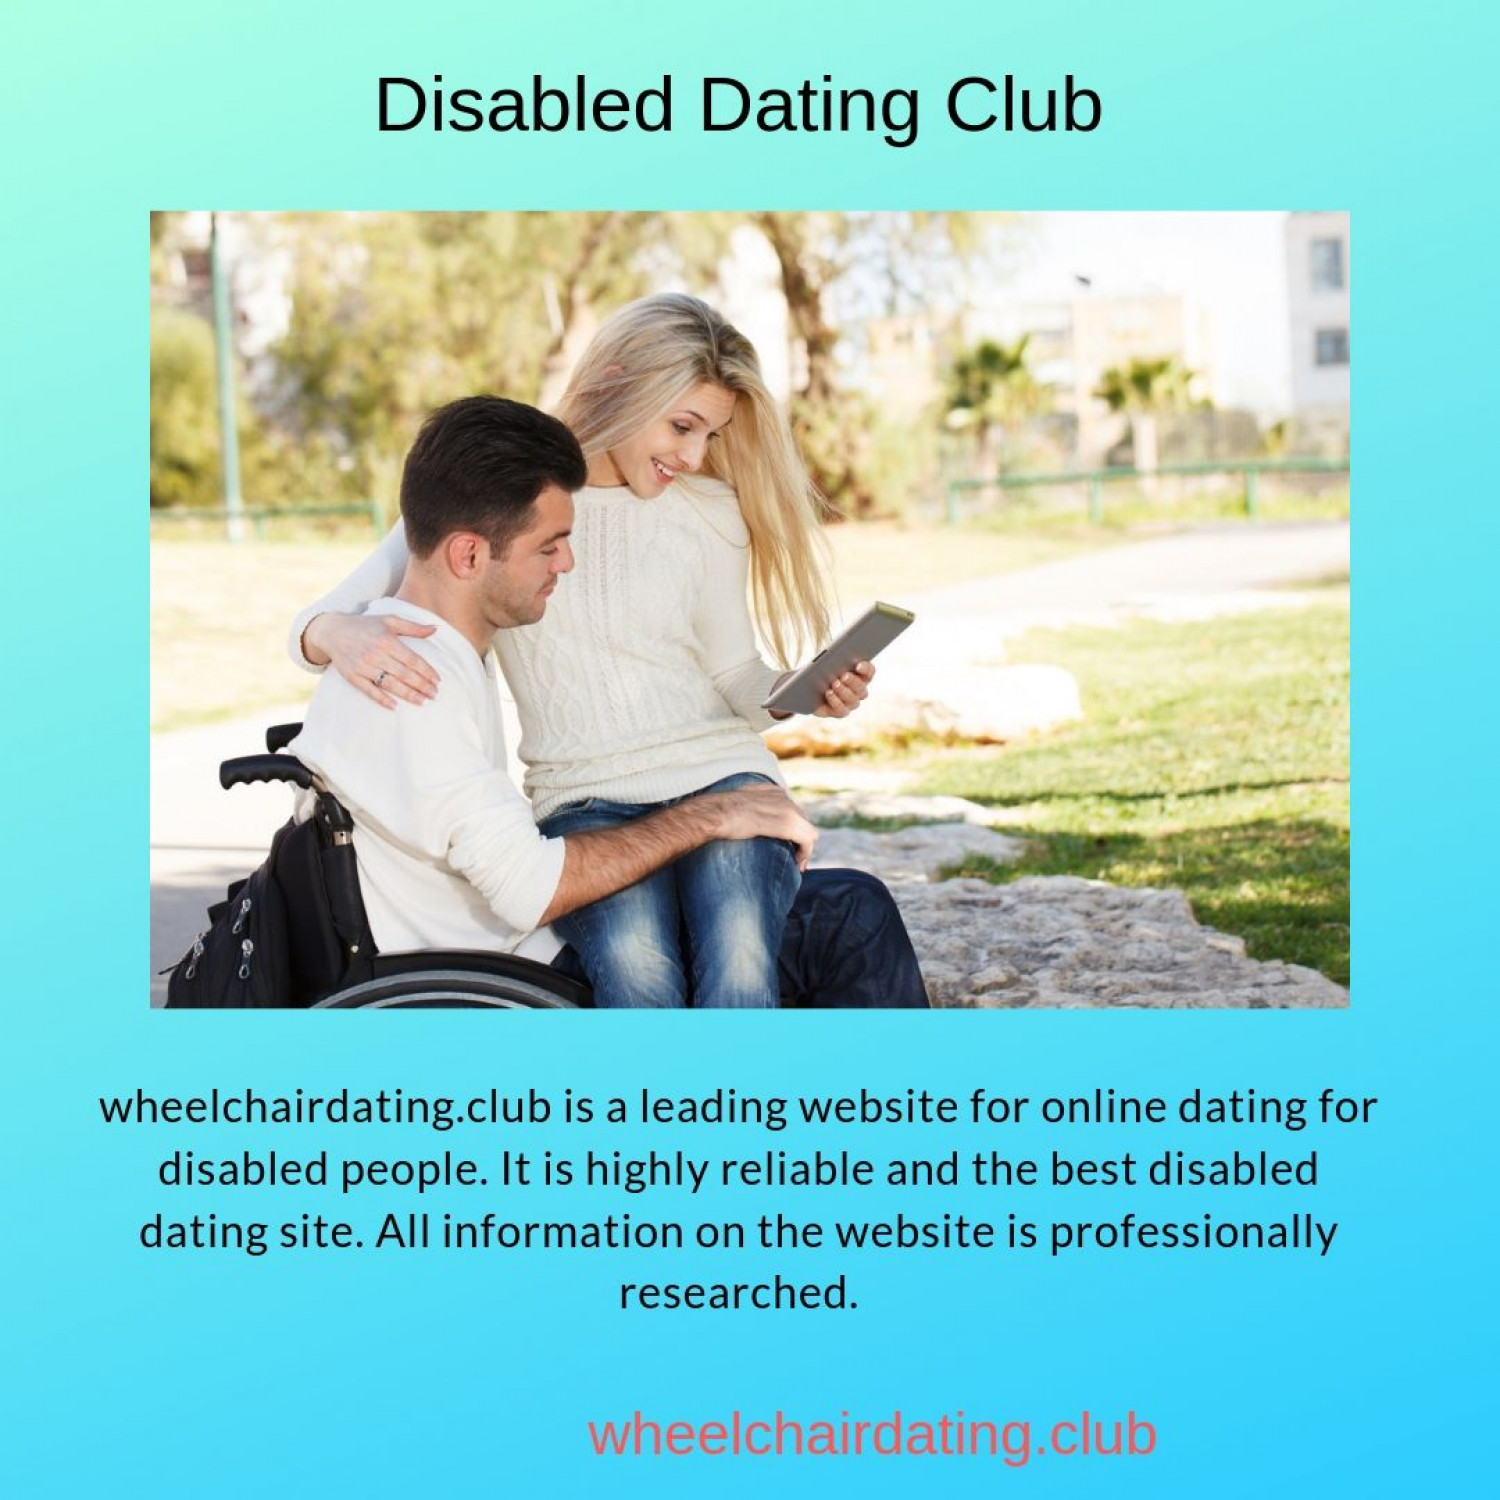 Disabled Dating Club Infographic